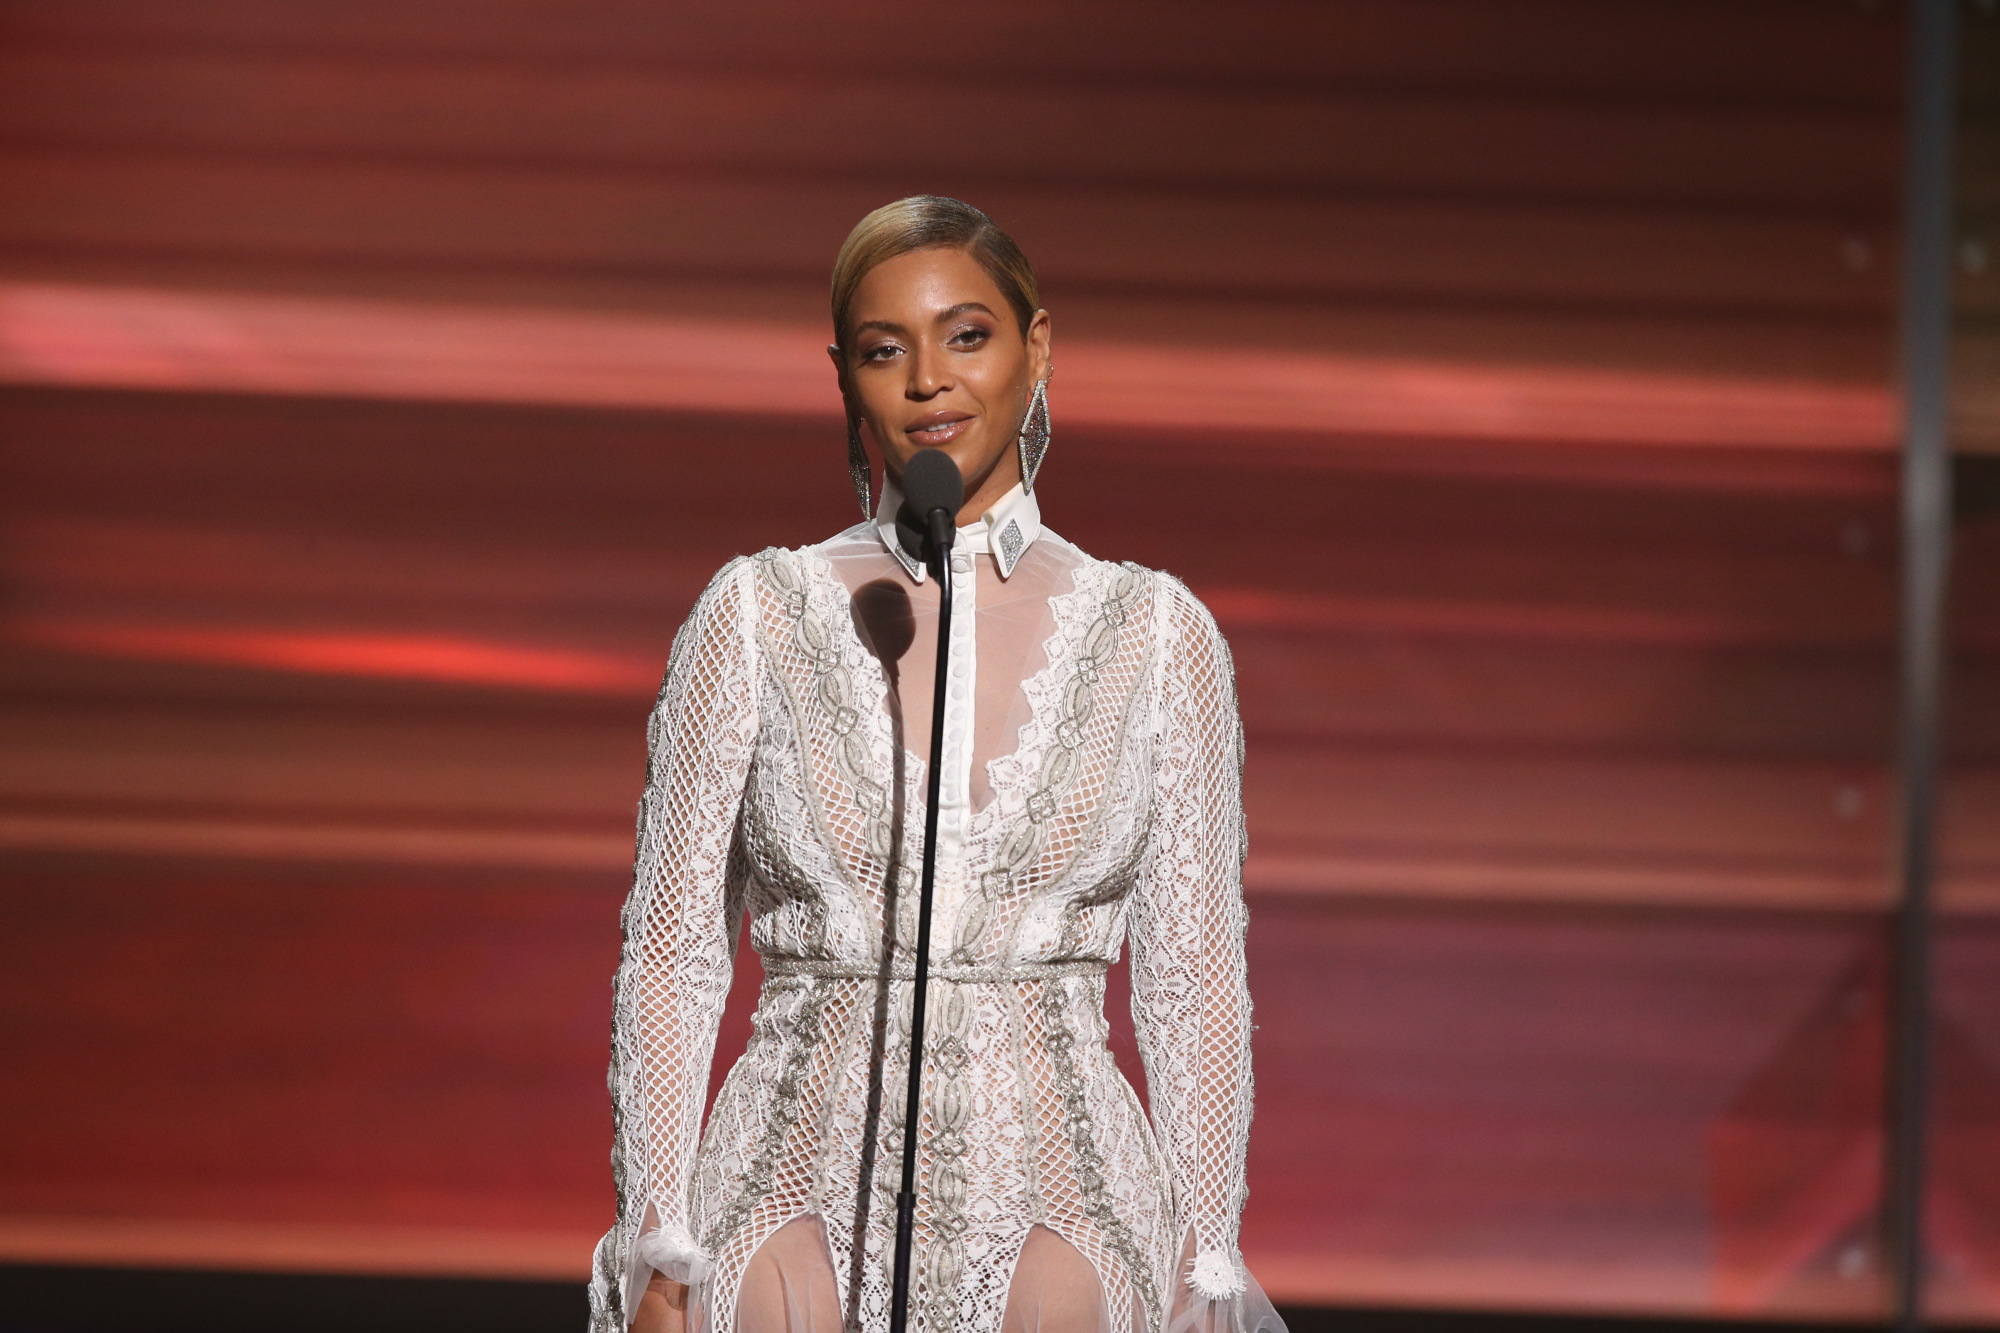 LOS ANGELES - FEBRUARY 15: Beyonce during THE 58TH ANNUAL GRAMMY AWARDS, Monday, Feb. 15, 2016 (8:00-11:30 PM, live ET) at STAPLES Center in Los Angeles and broadcast on the CBS Television Network. (Photo by Cliff Lipson/CBS via Getty Images)